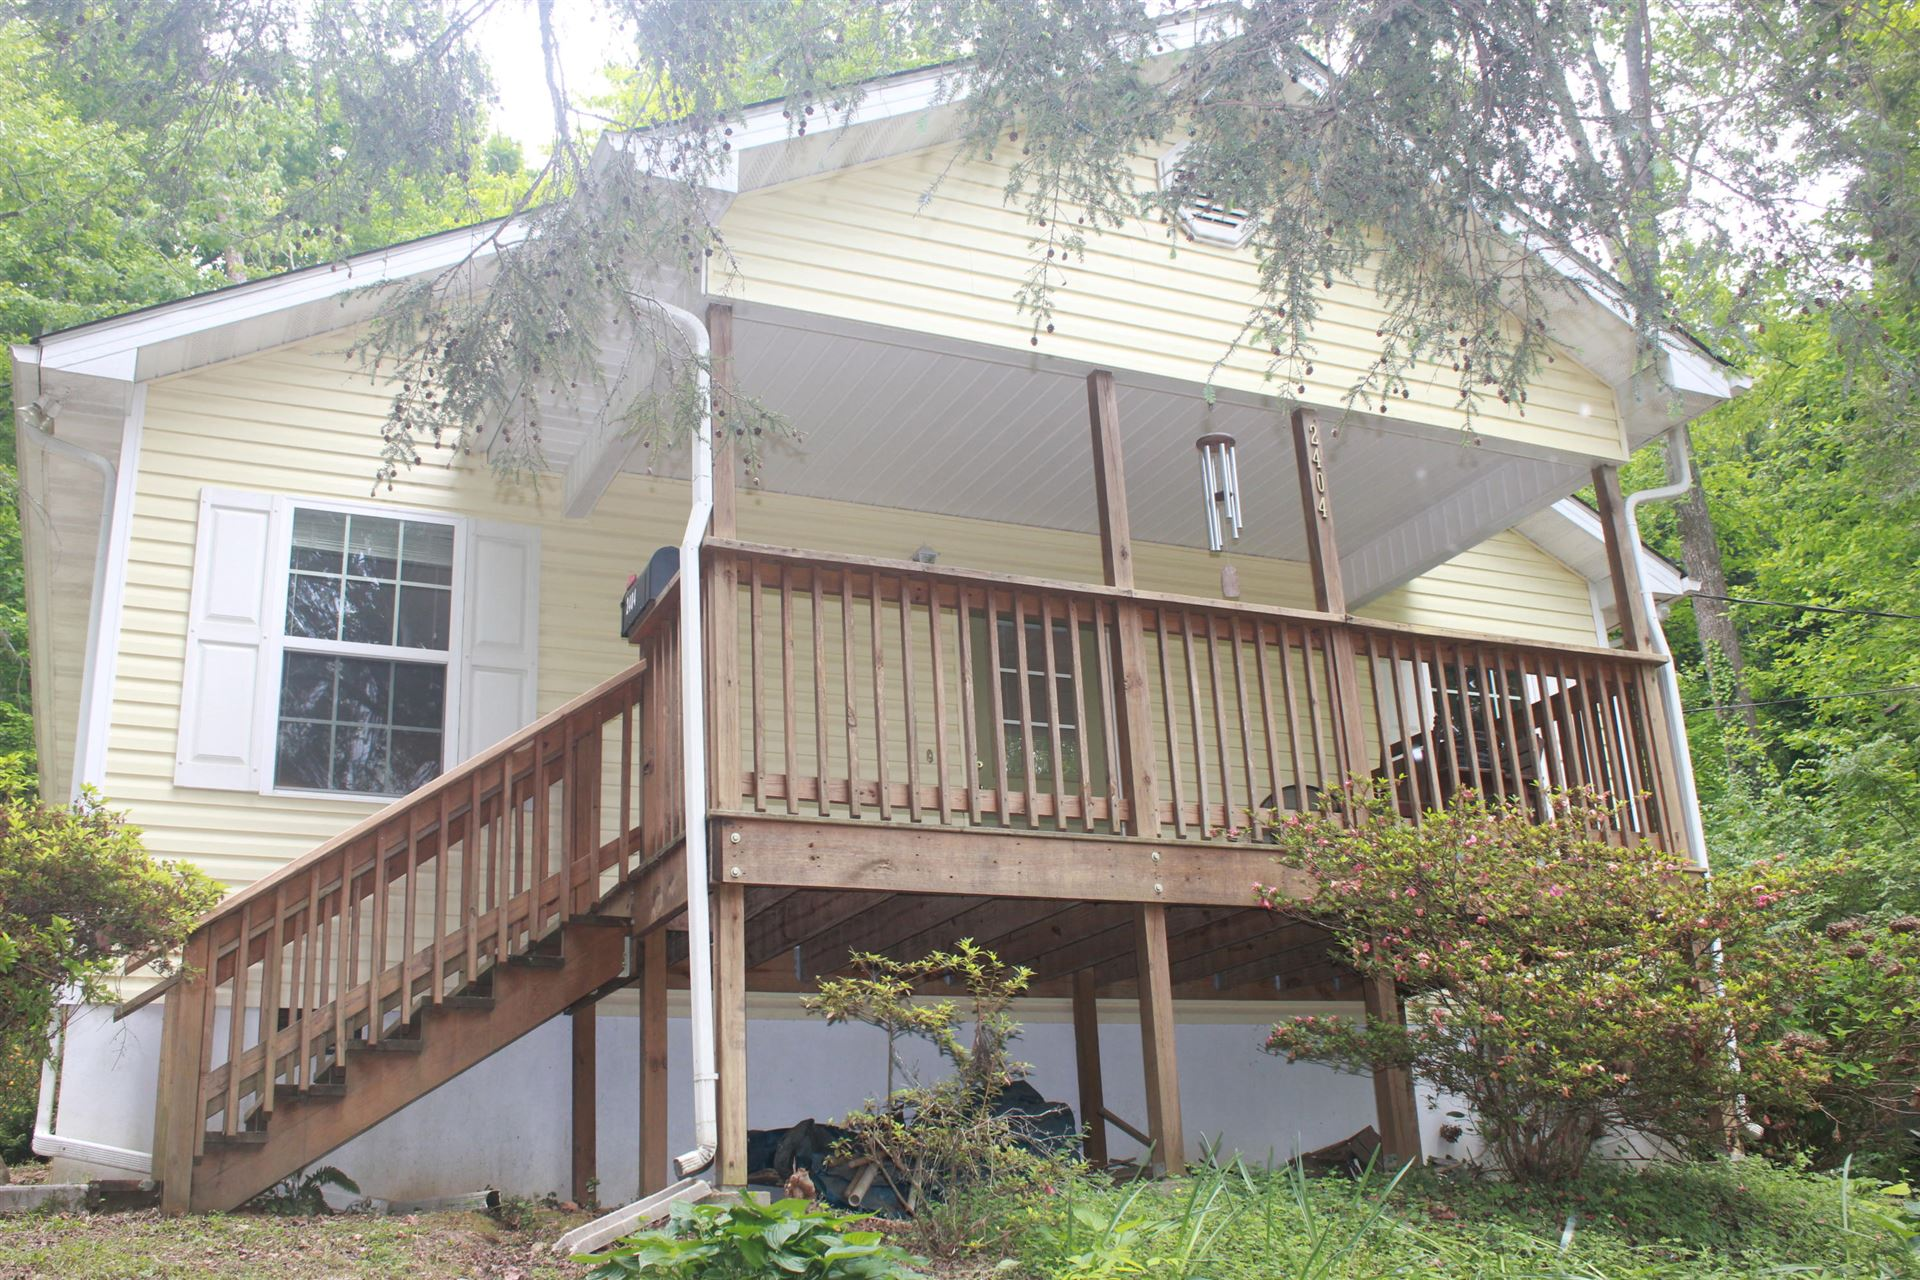 Photo of 2404 Rhea Rd, Knoxville, TN 37920 (MLS # 1153918)